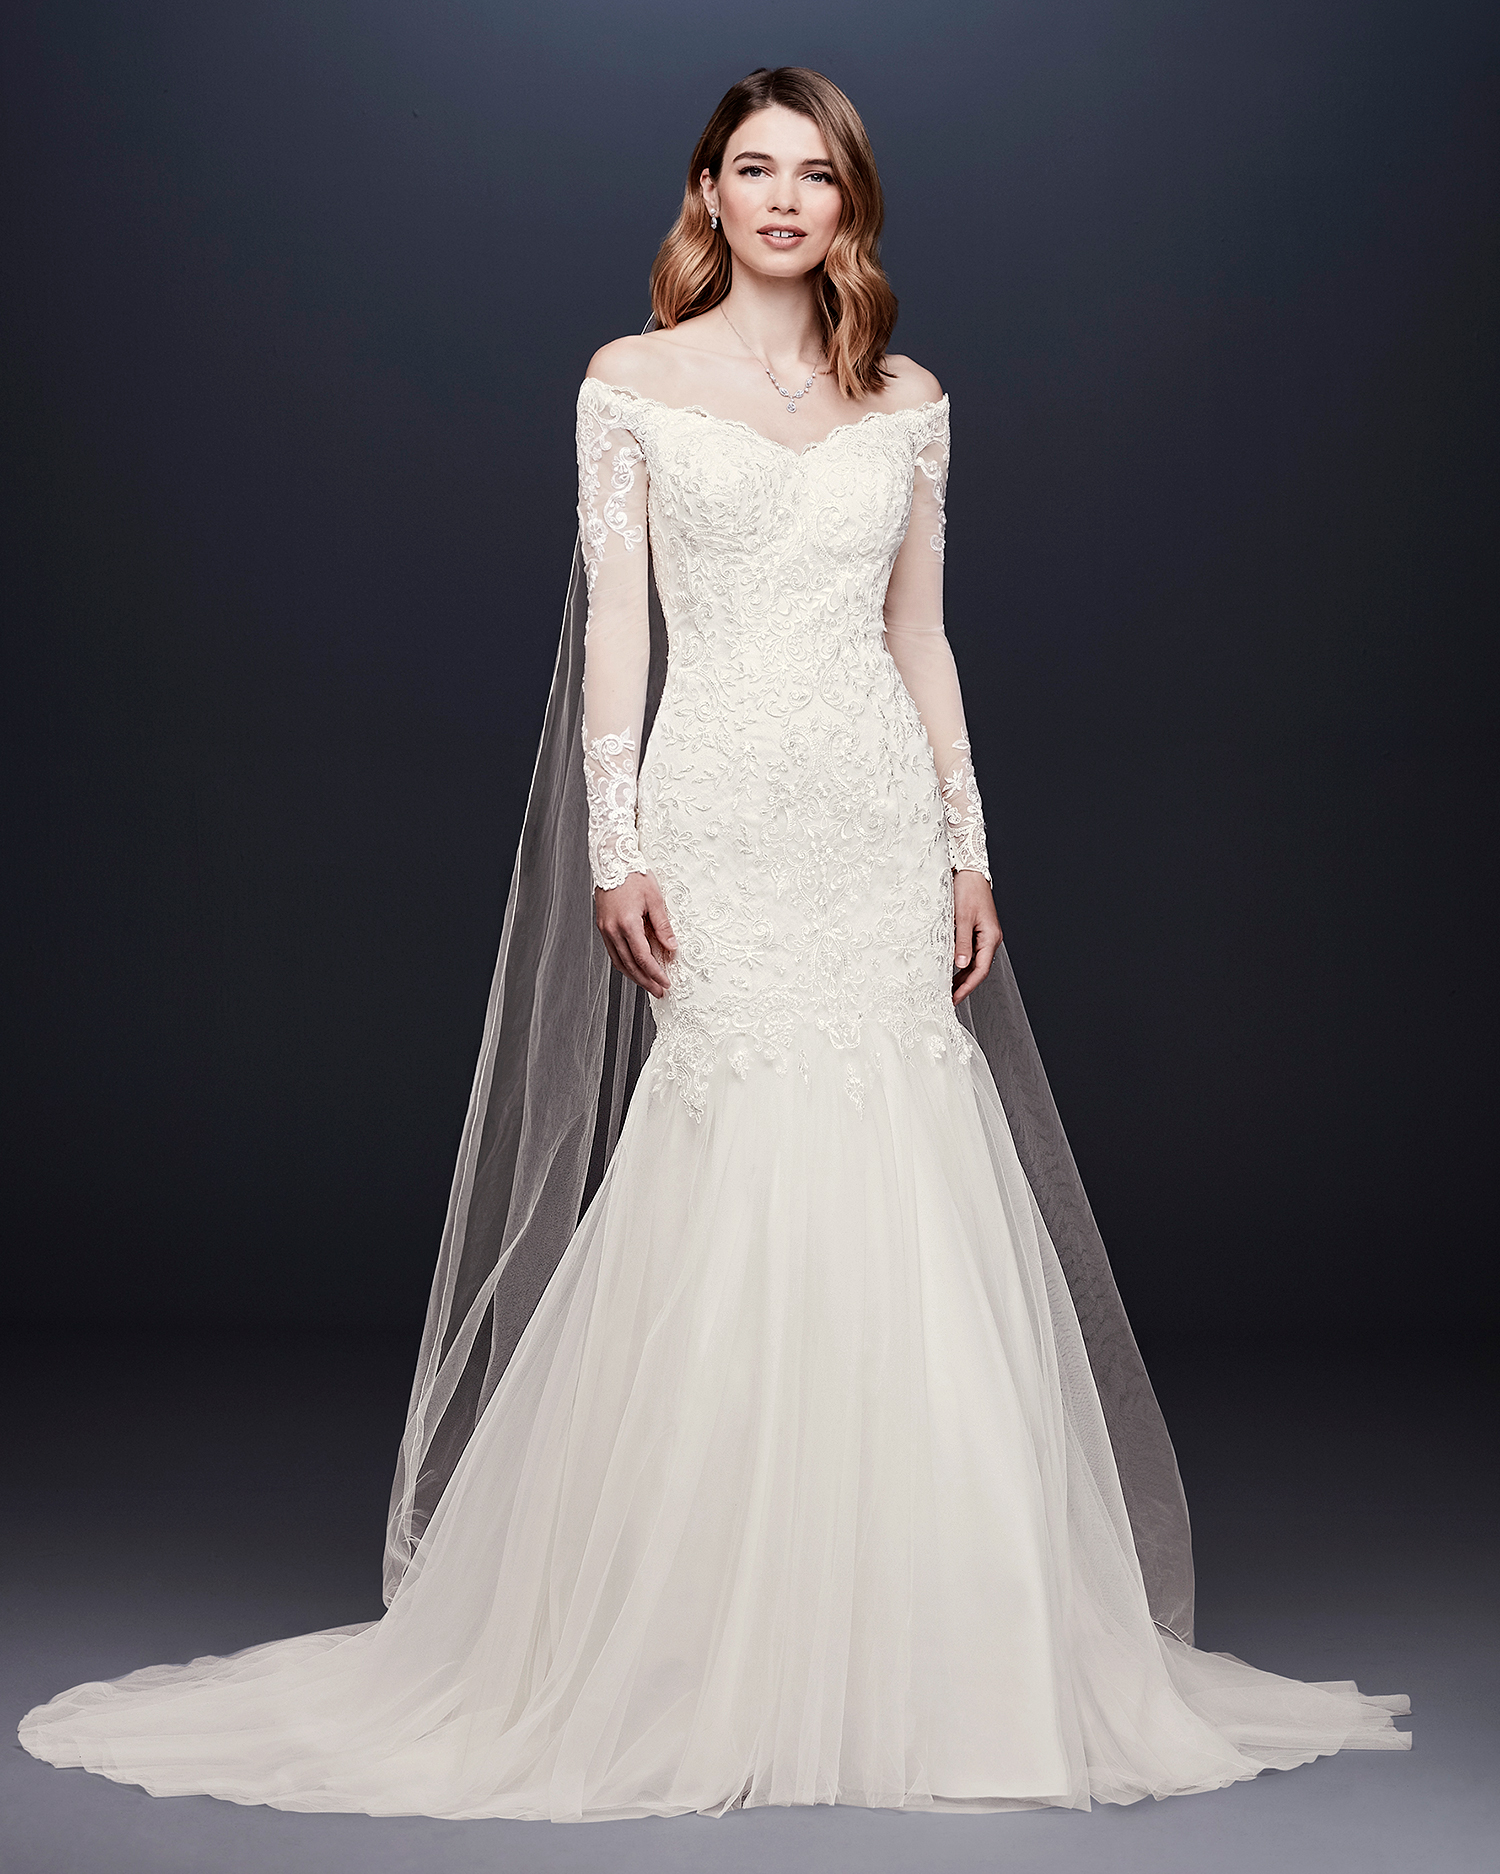 davids bridal wedding dress fall 2019 off-the-shoulder long-sleeved trumpet